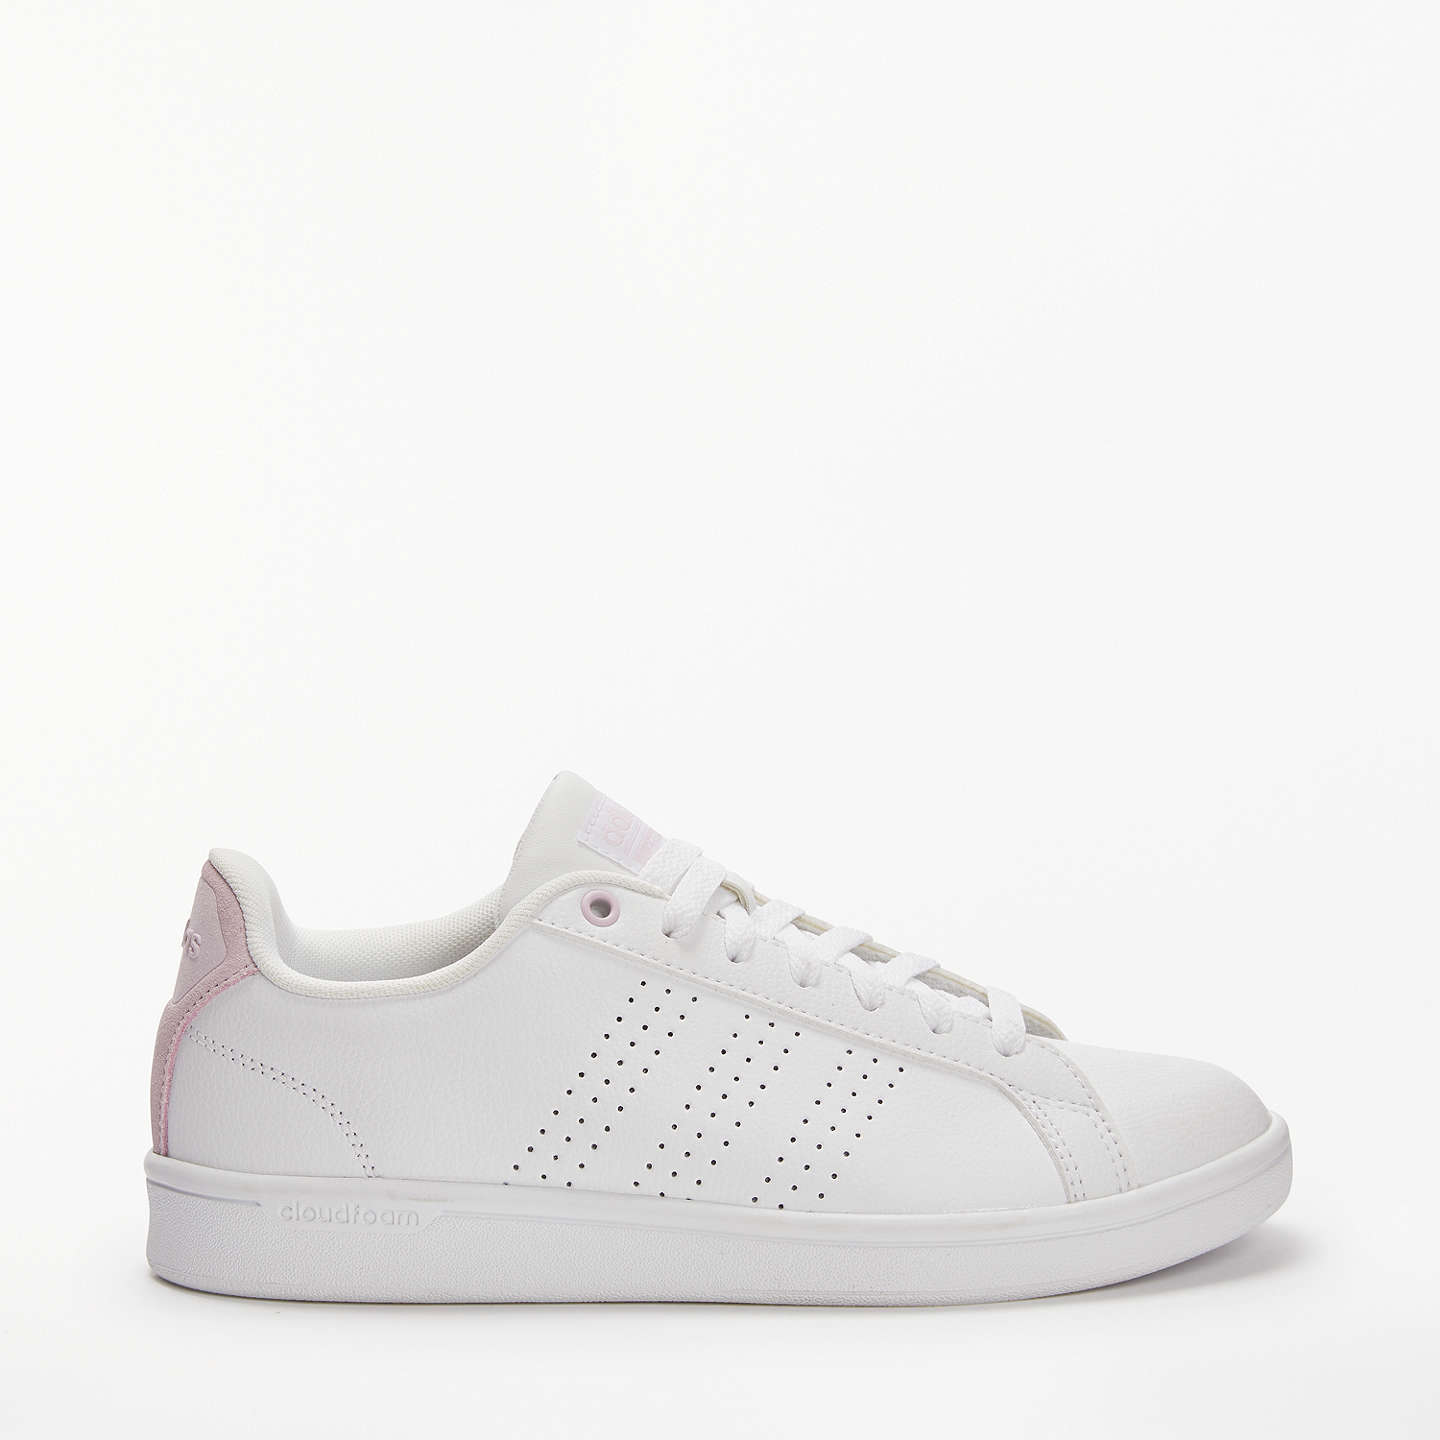 Buyadidas Neo Cloudfoam Advantage Women's Trainers, White, 4 Online at  johnlewis. ...